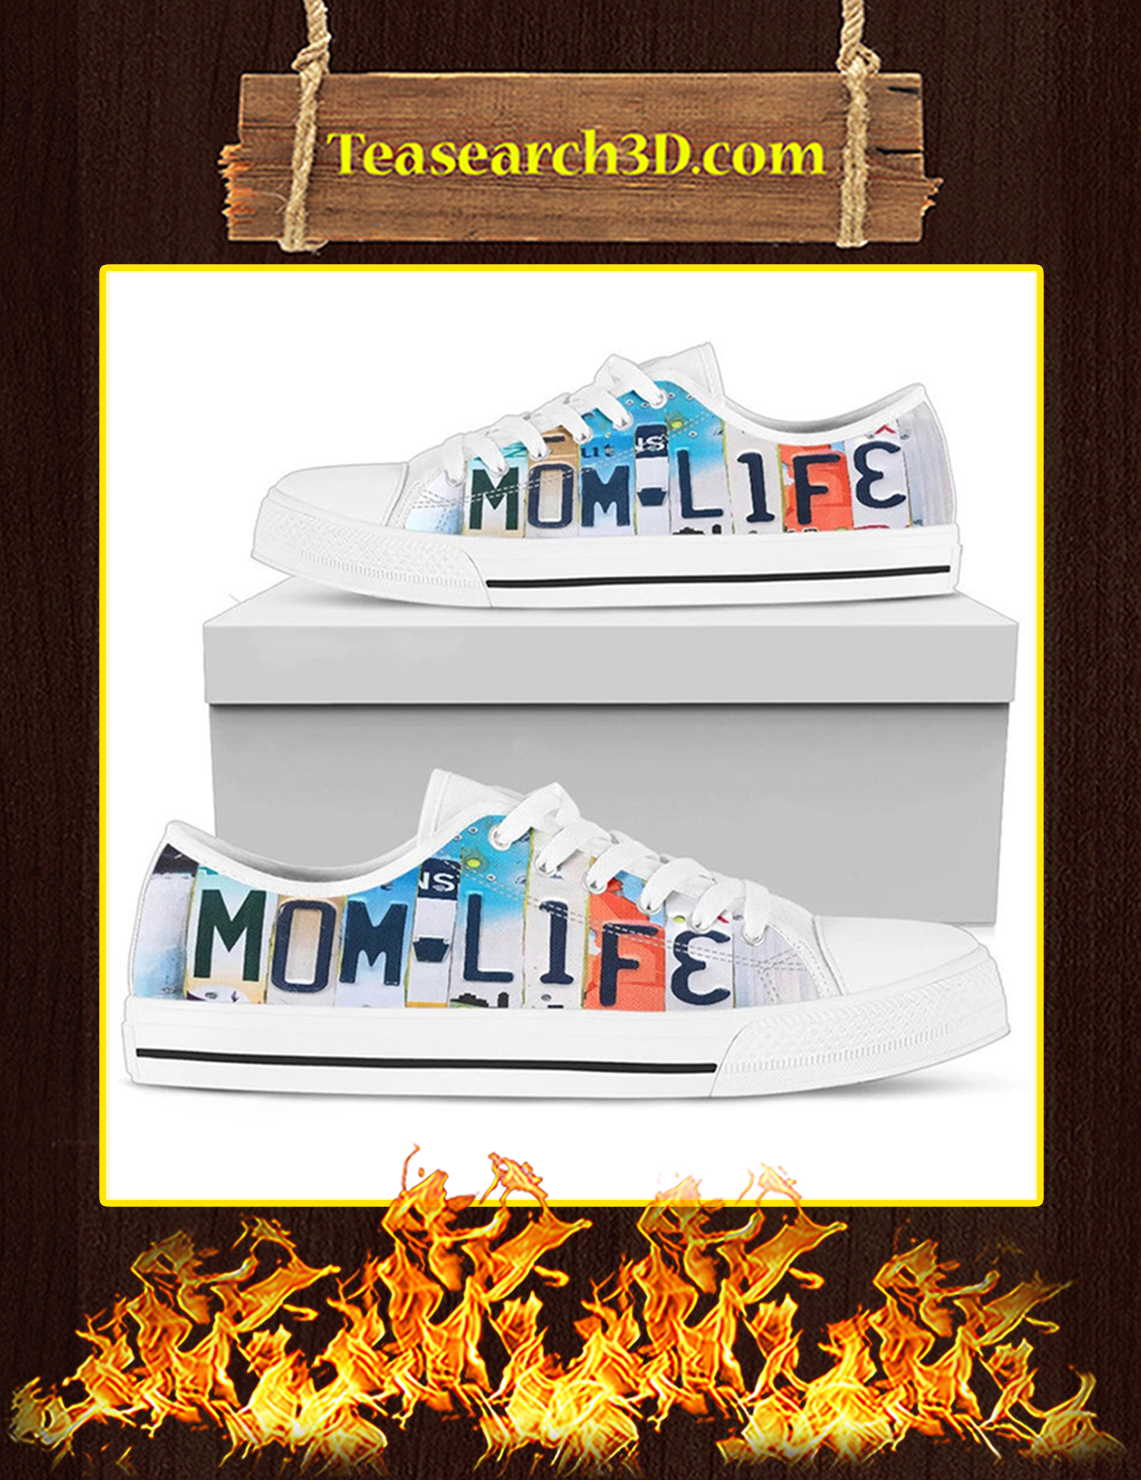 Mom Life Low Top Shoes Pic 3